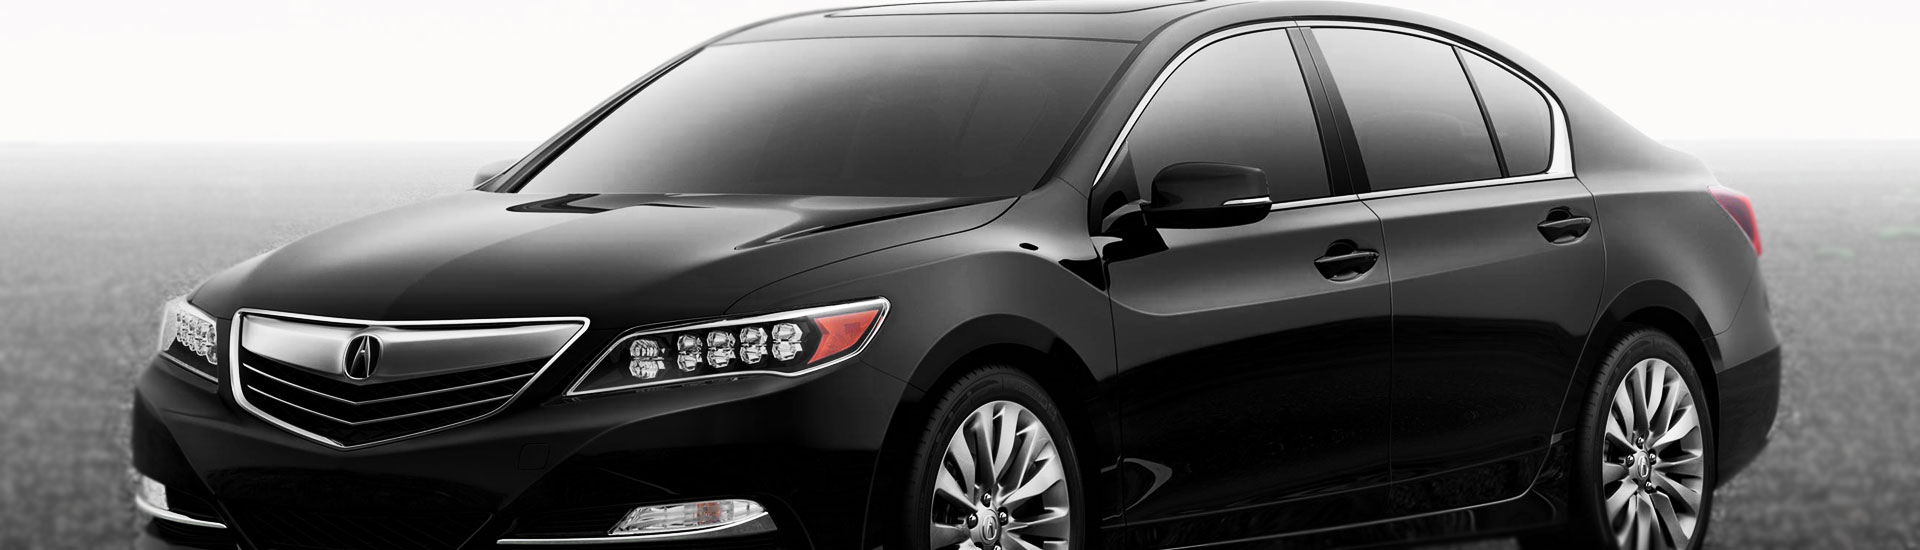 Acura RLX Window Tint